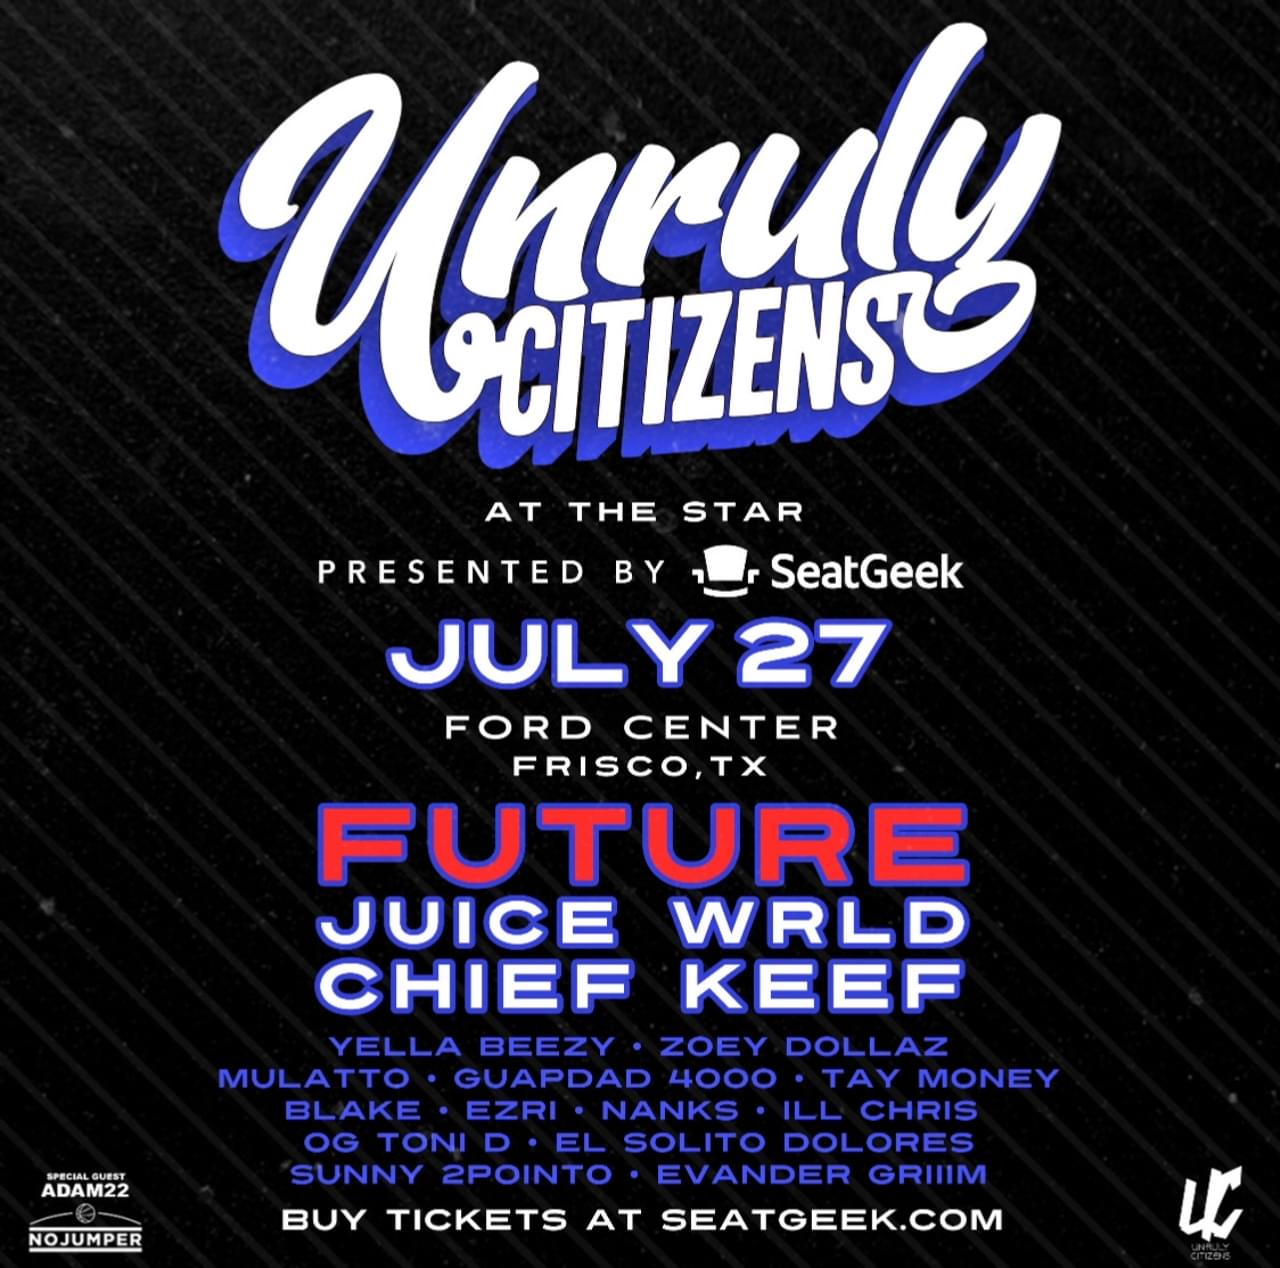 ROAD TRIP TO TEXAS FOR UNRULY CITIZENS MUSIC FEST!!